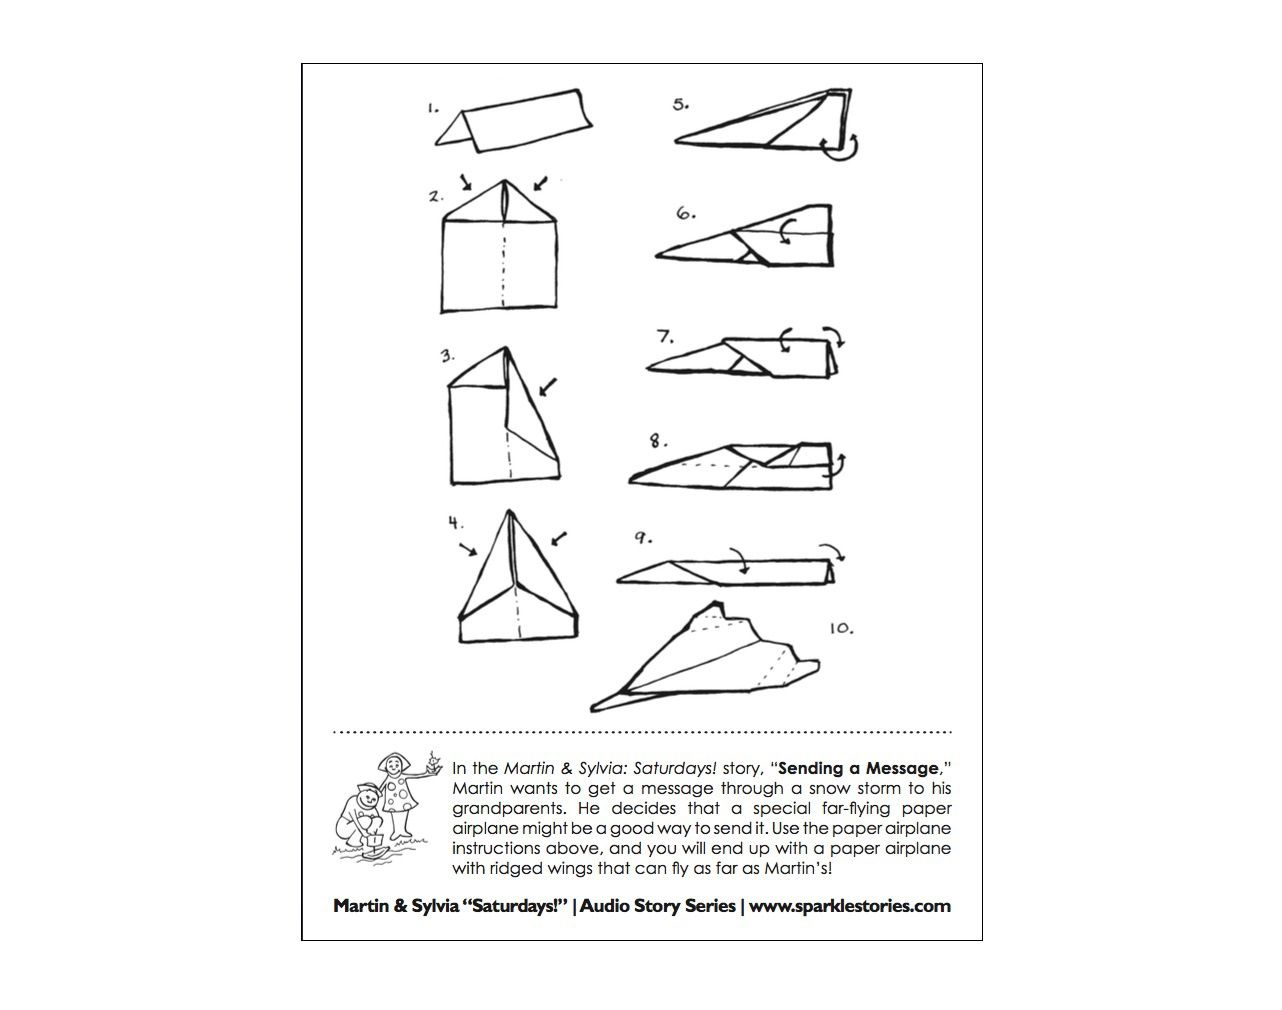 009 Magnificent Printable Paper Airplane Instruction Photo  Instructions Free Pdf FoldingFull